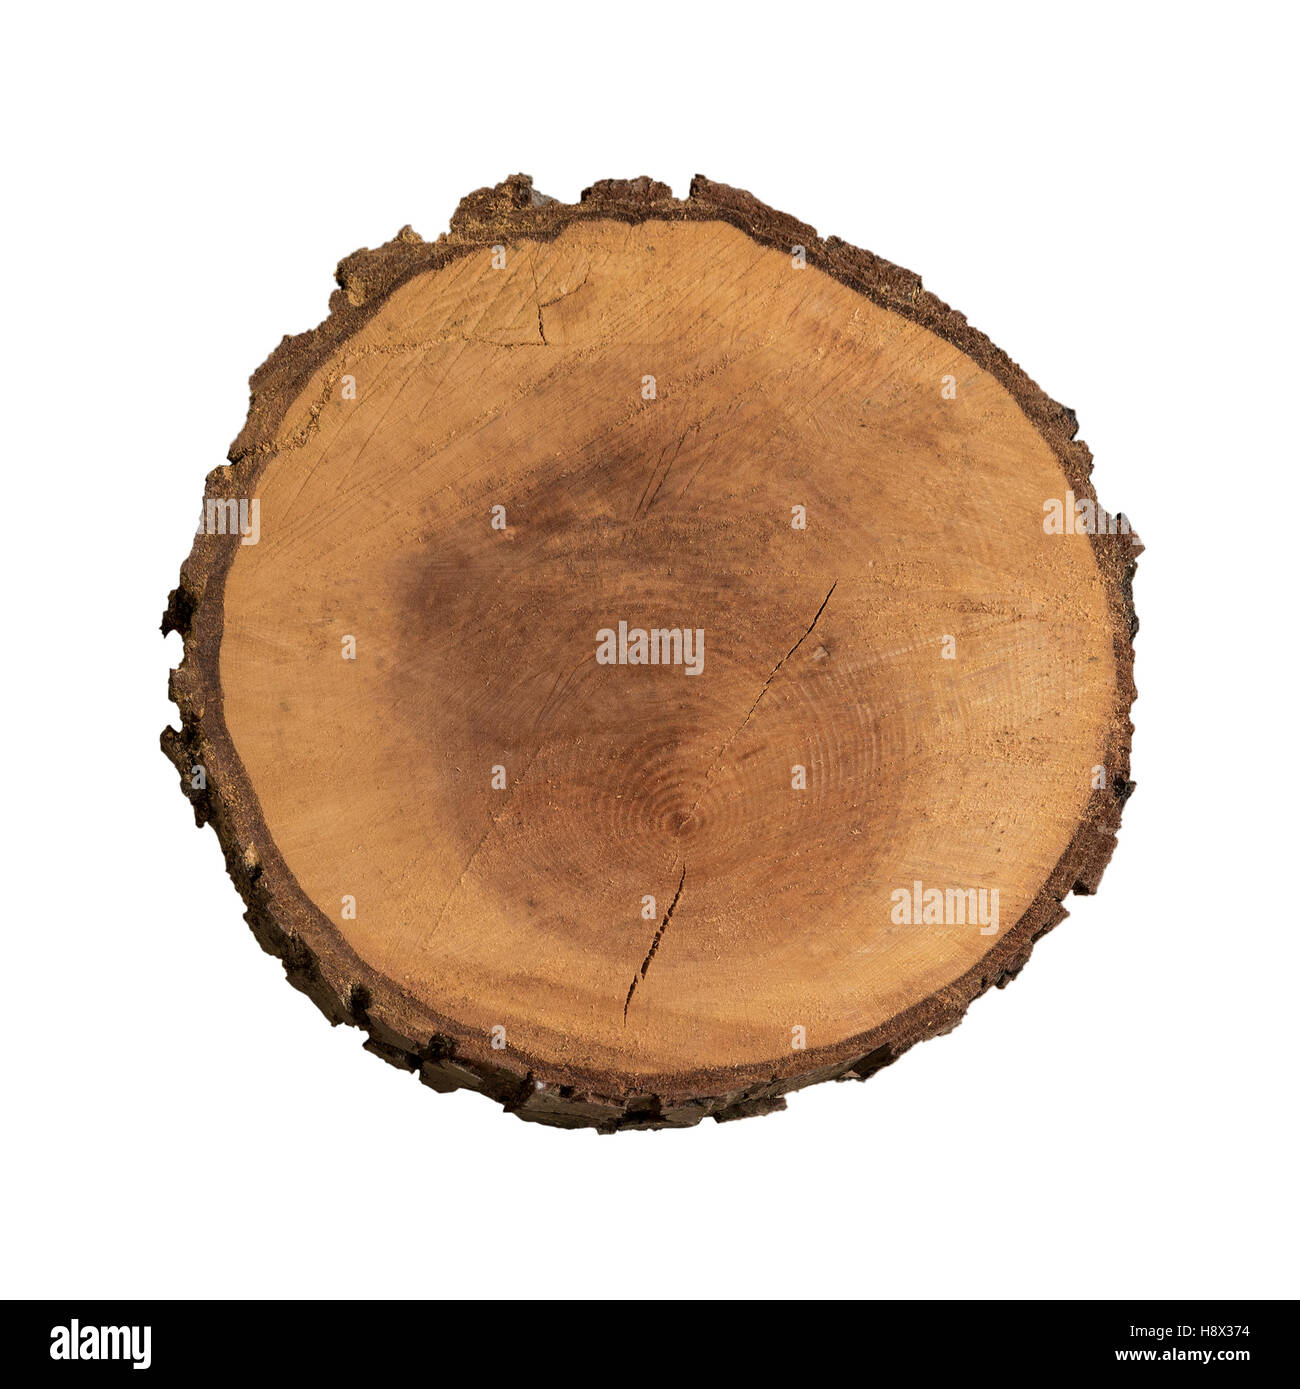 Image of an isolated slice of wood from tree trunk. Stock Photo